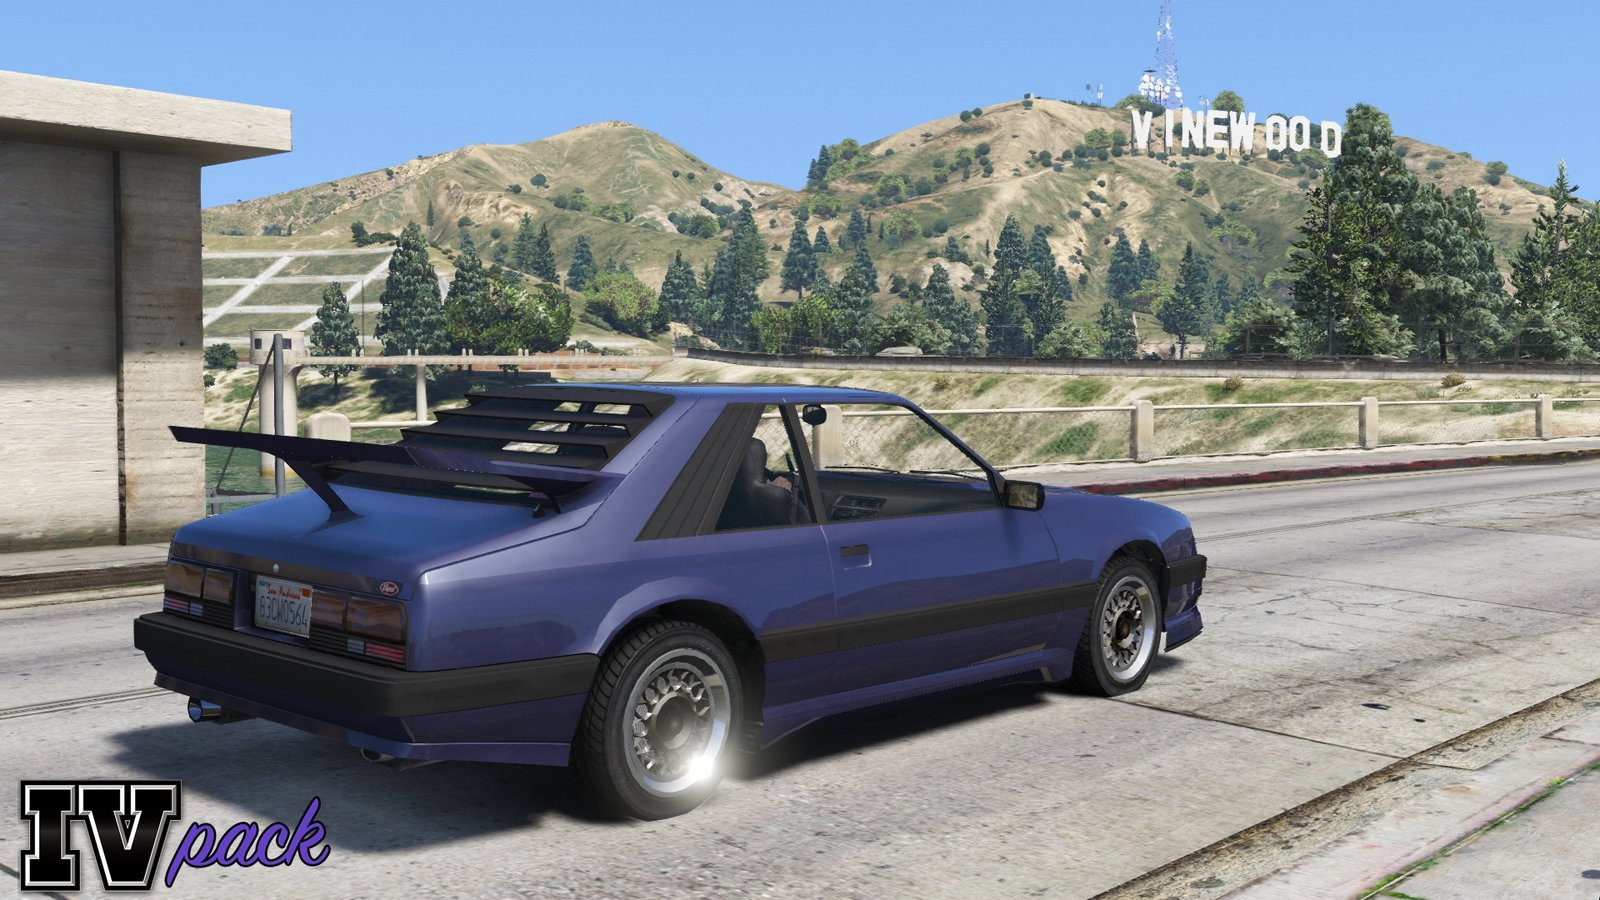 ivpack gta iv vehicles in gta v vehicules pour gta v sur gta modding. Black Bedroom Furniture Sets. Home Design Ideas